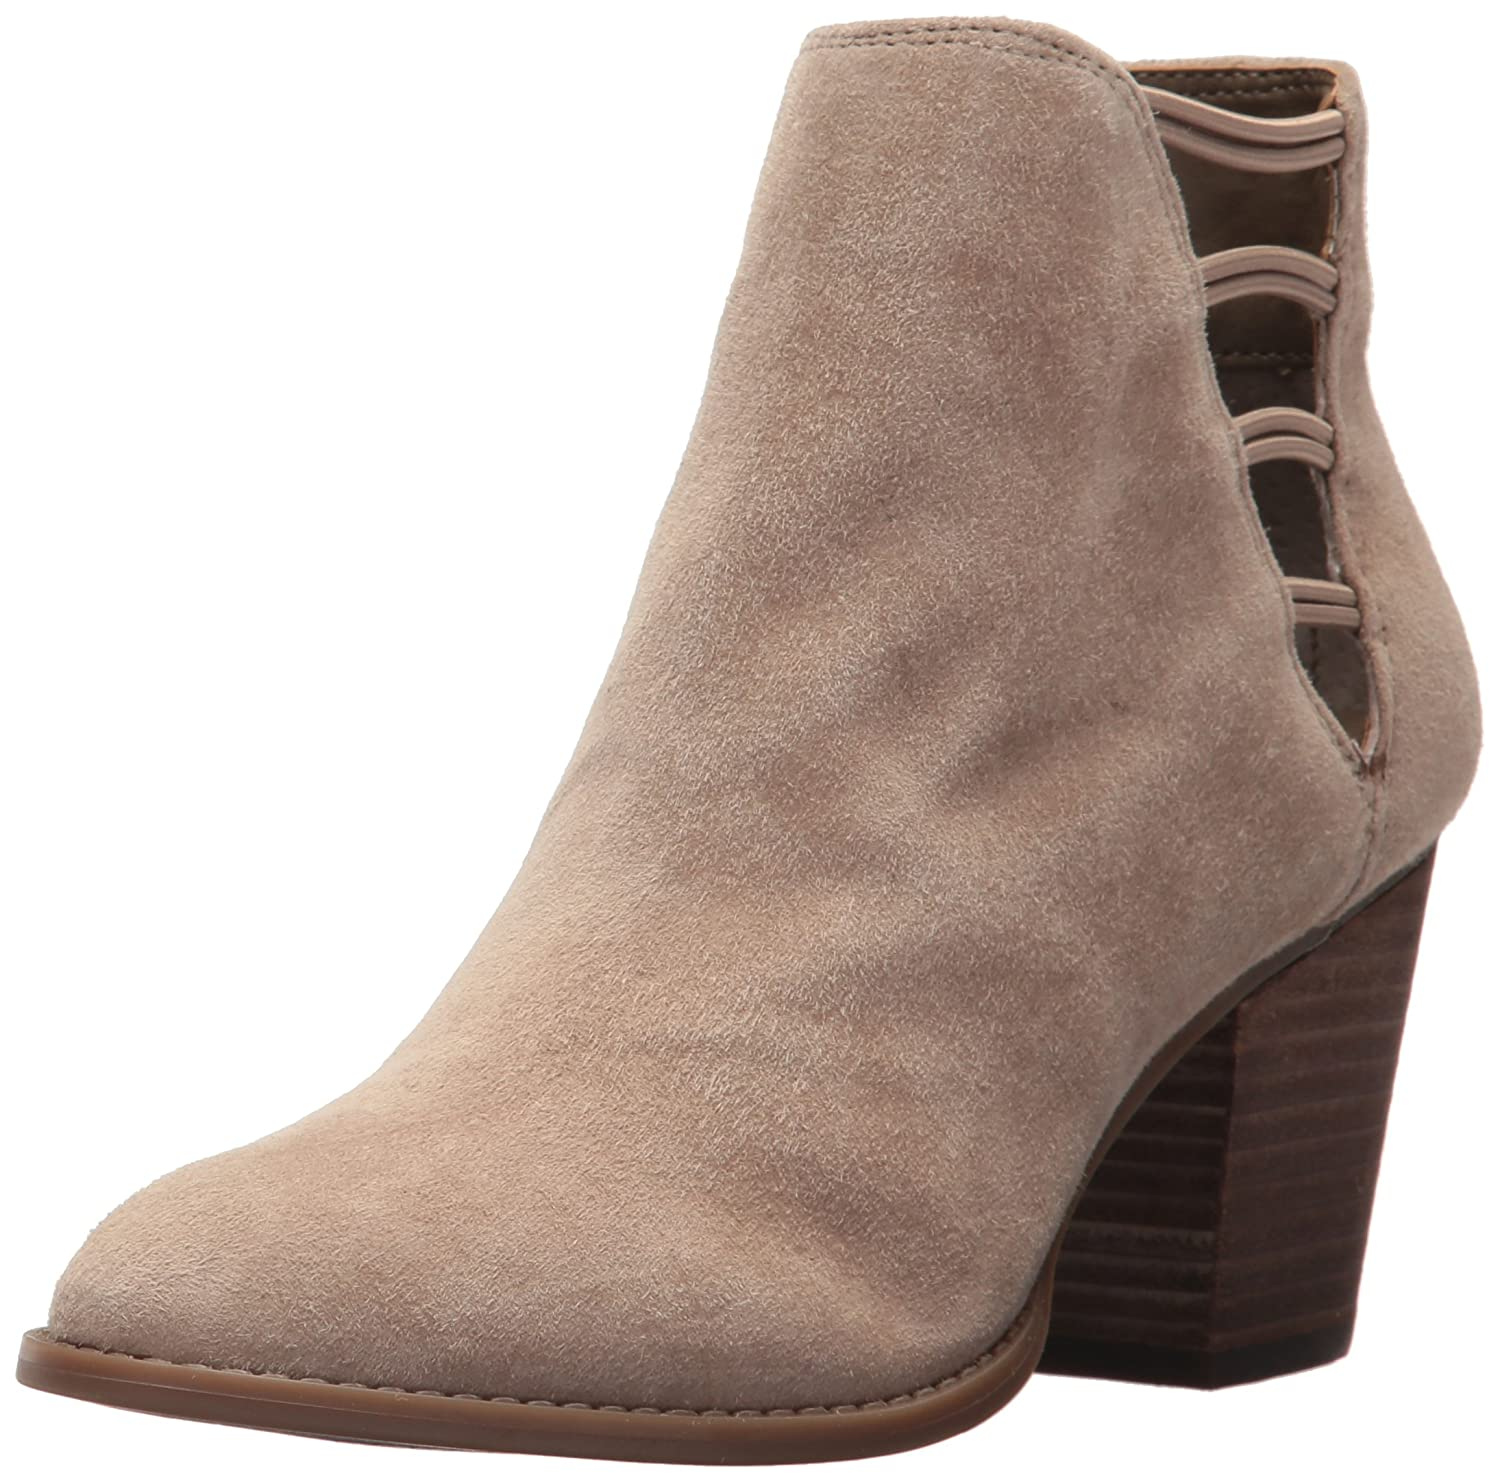 Jessica Simpson Women's Yasma Ankle Boot B073W85FZ3 6 B(M) US|Wild Mushroom